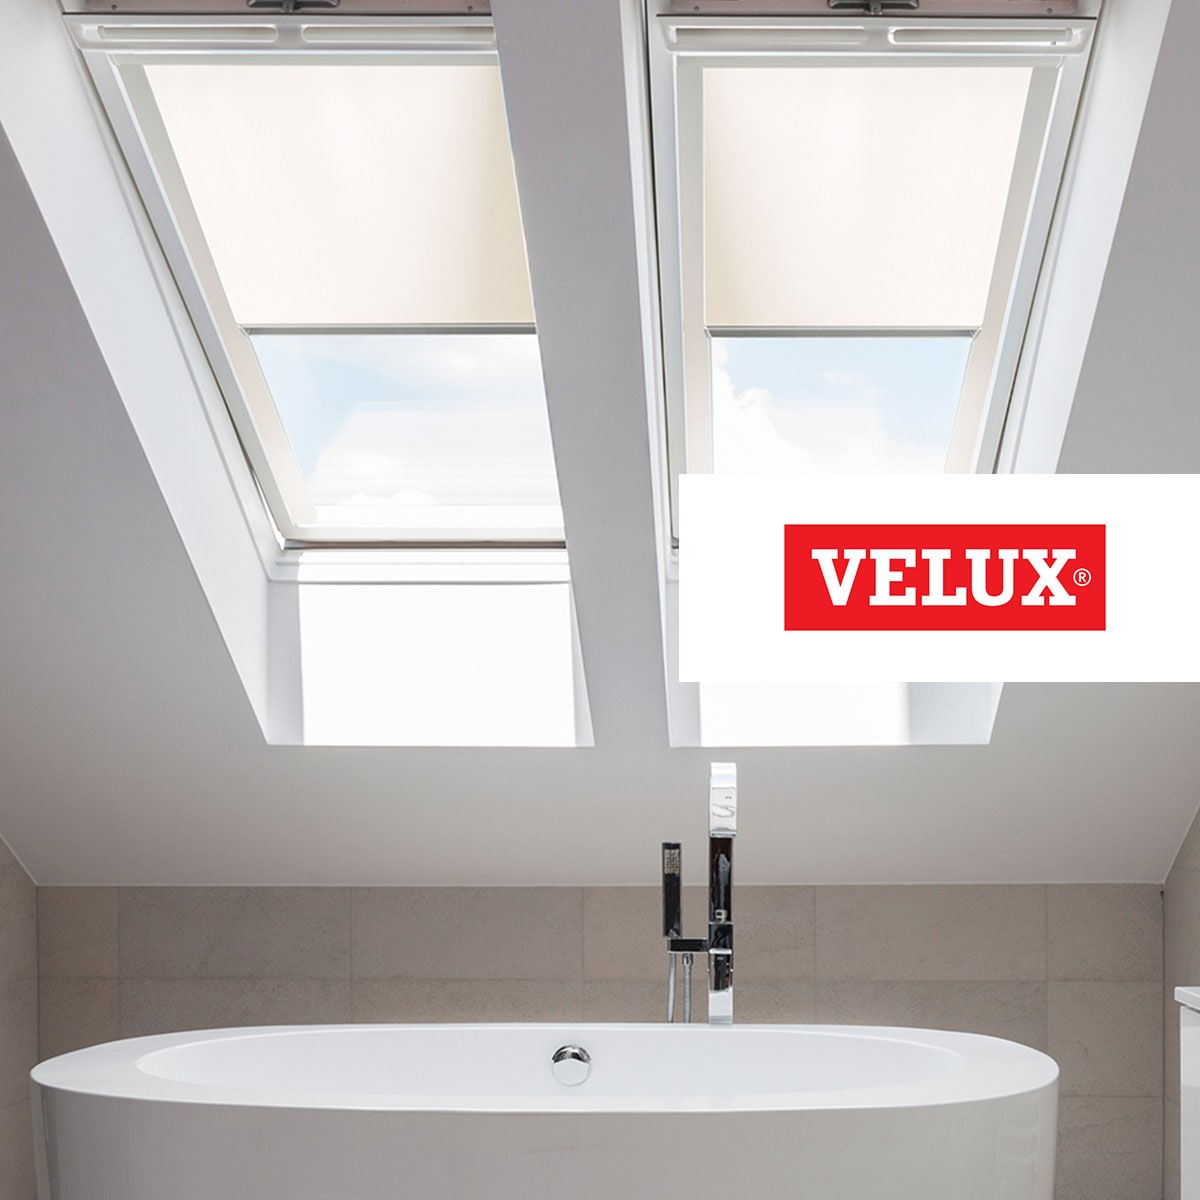 velux fliegengitter f r dachfenster nw62 kyushucon. Black Bedroom Furniture Sets. Home Design Ideas